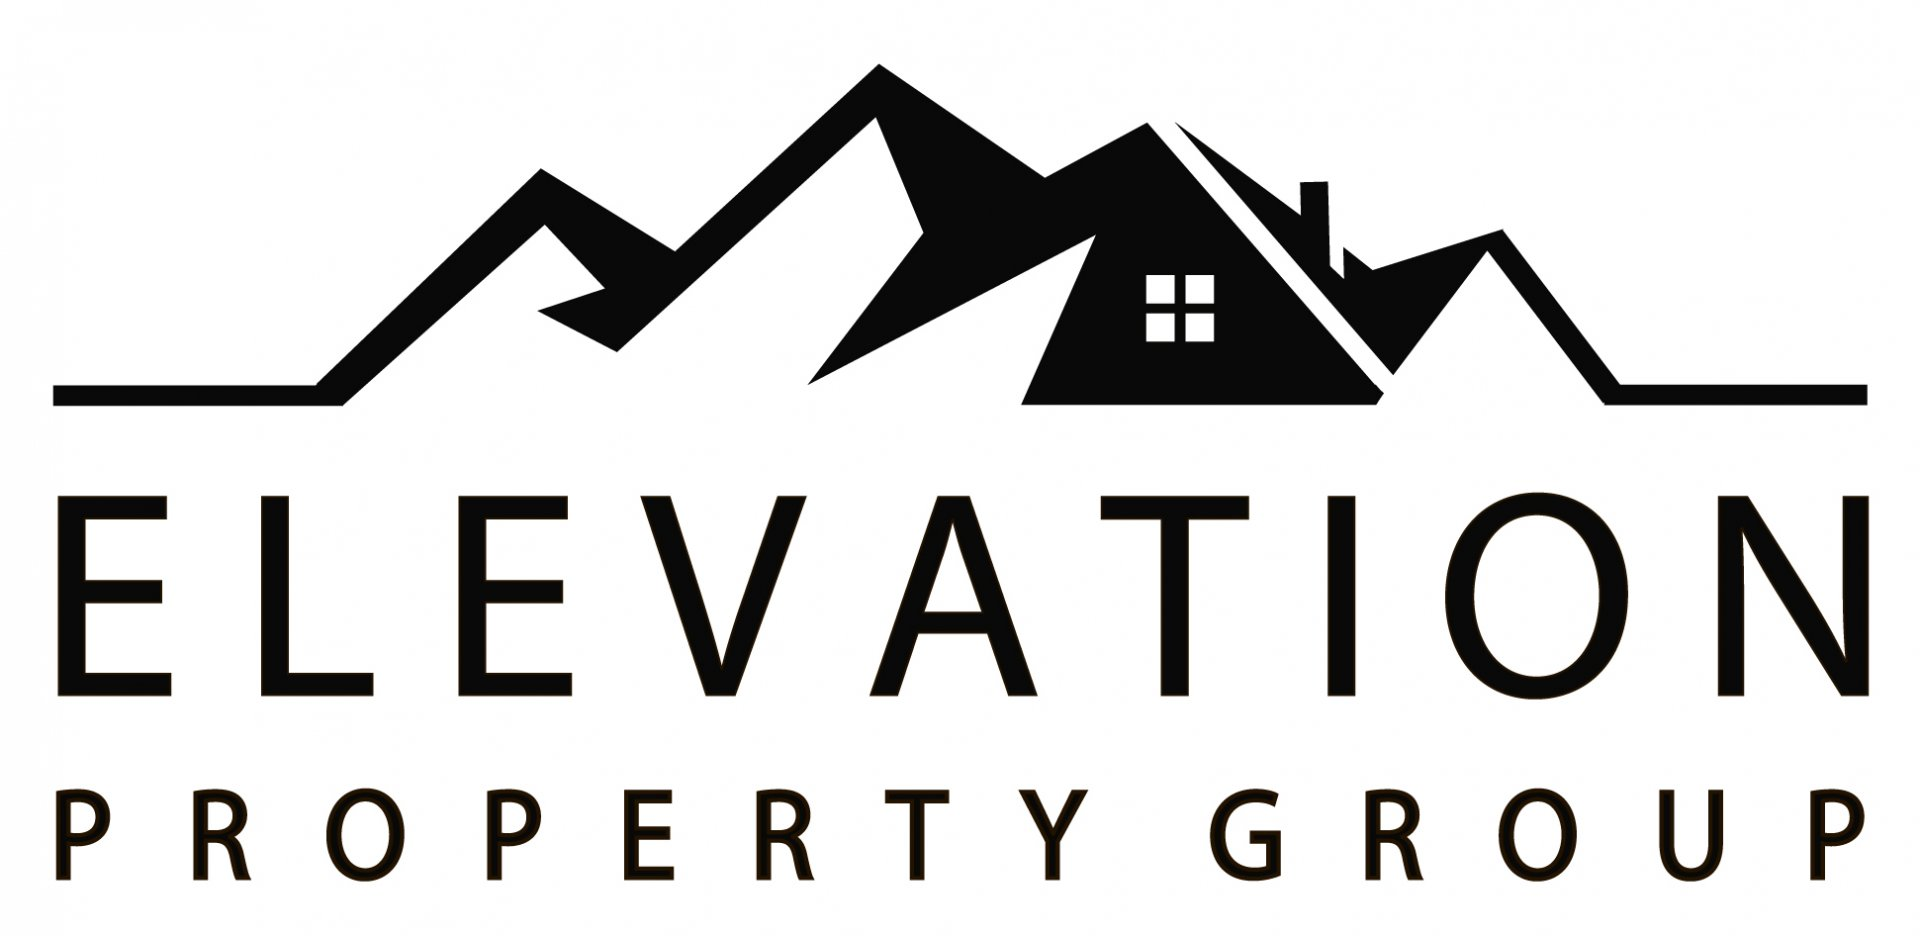 Elevation Property Group logo